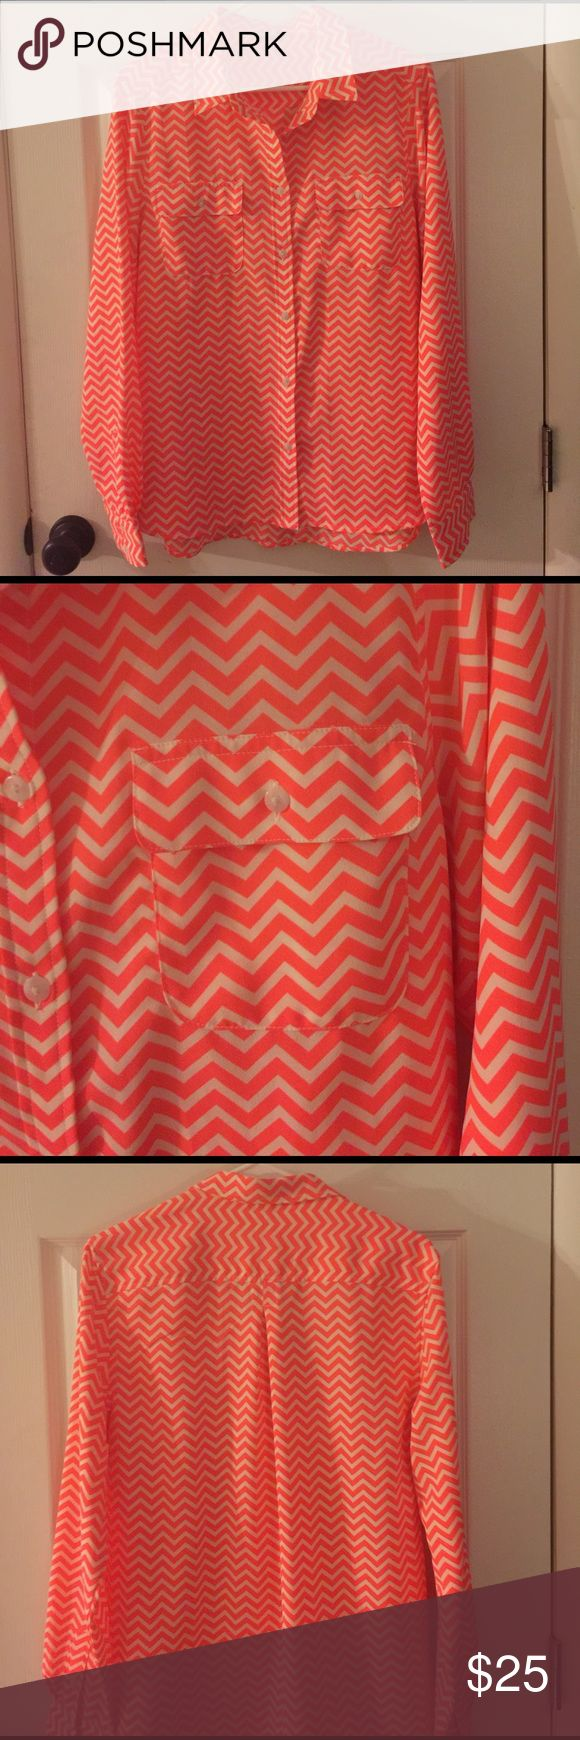 Fluorescent Chevron Top Gorgeous nwot chevron oxford. Worn once - brand spankin new condition and super fun!! American Eagle Outfitters Tops Blouses